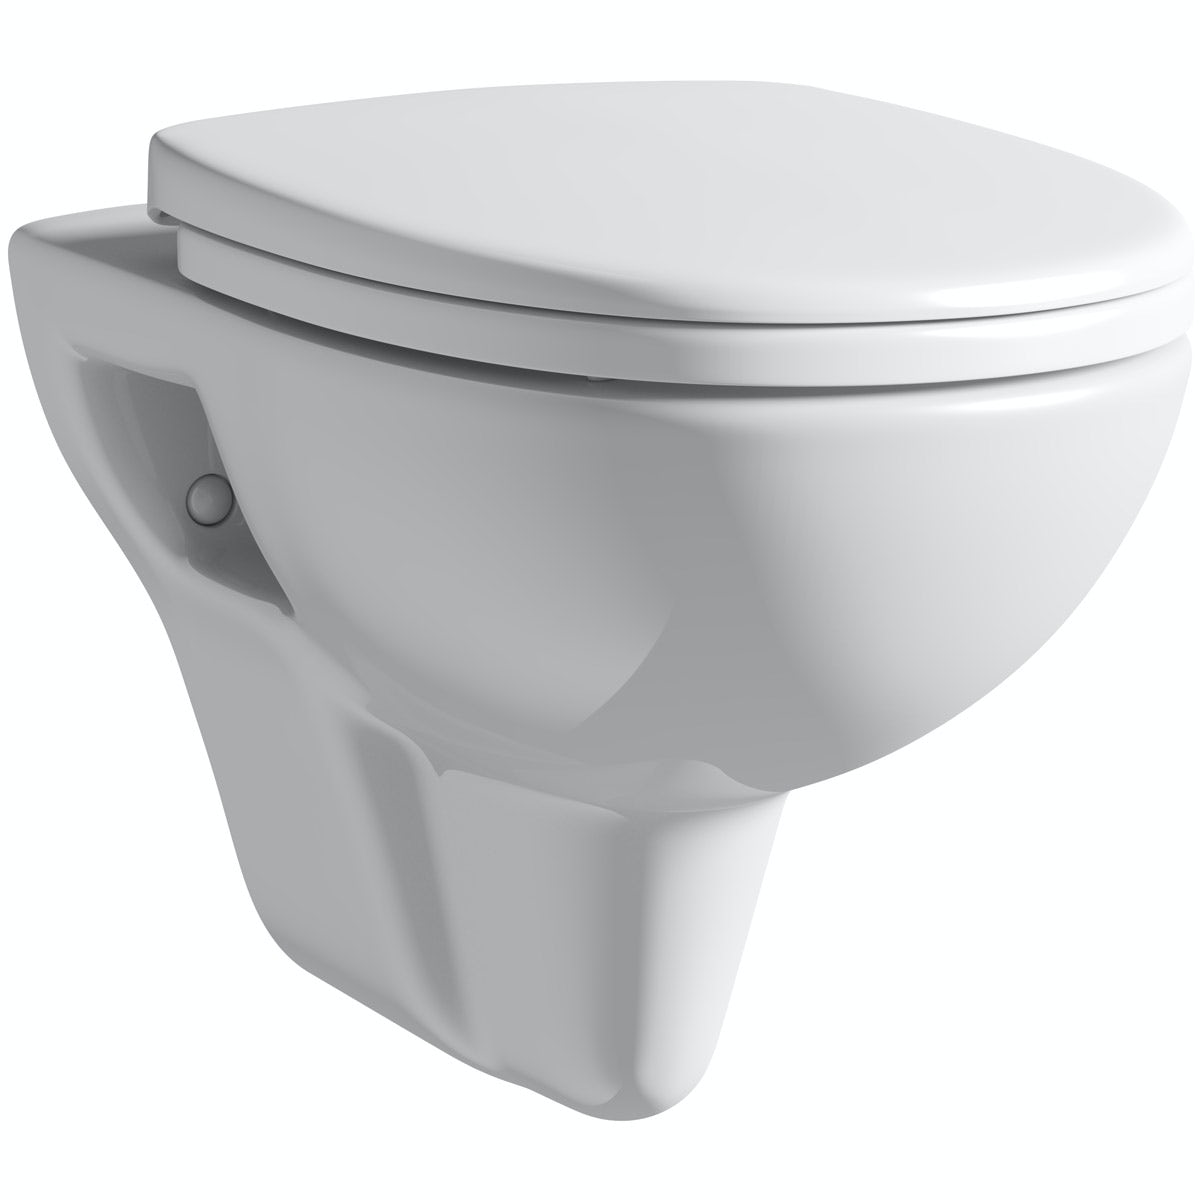 Orchard Eden wall hung toilet with soft close seat